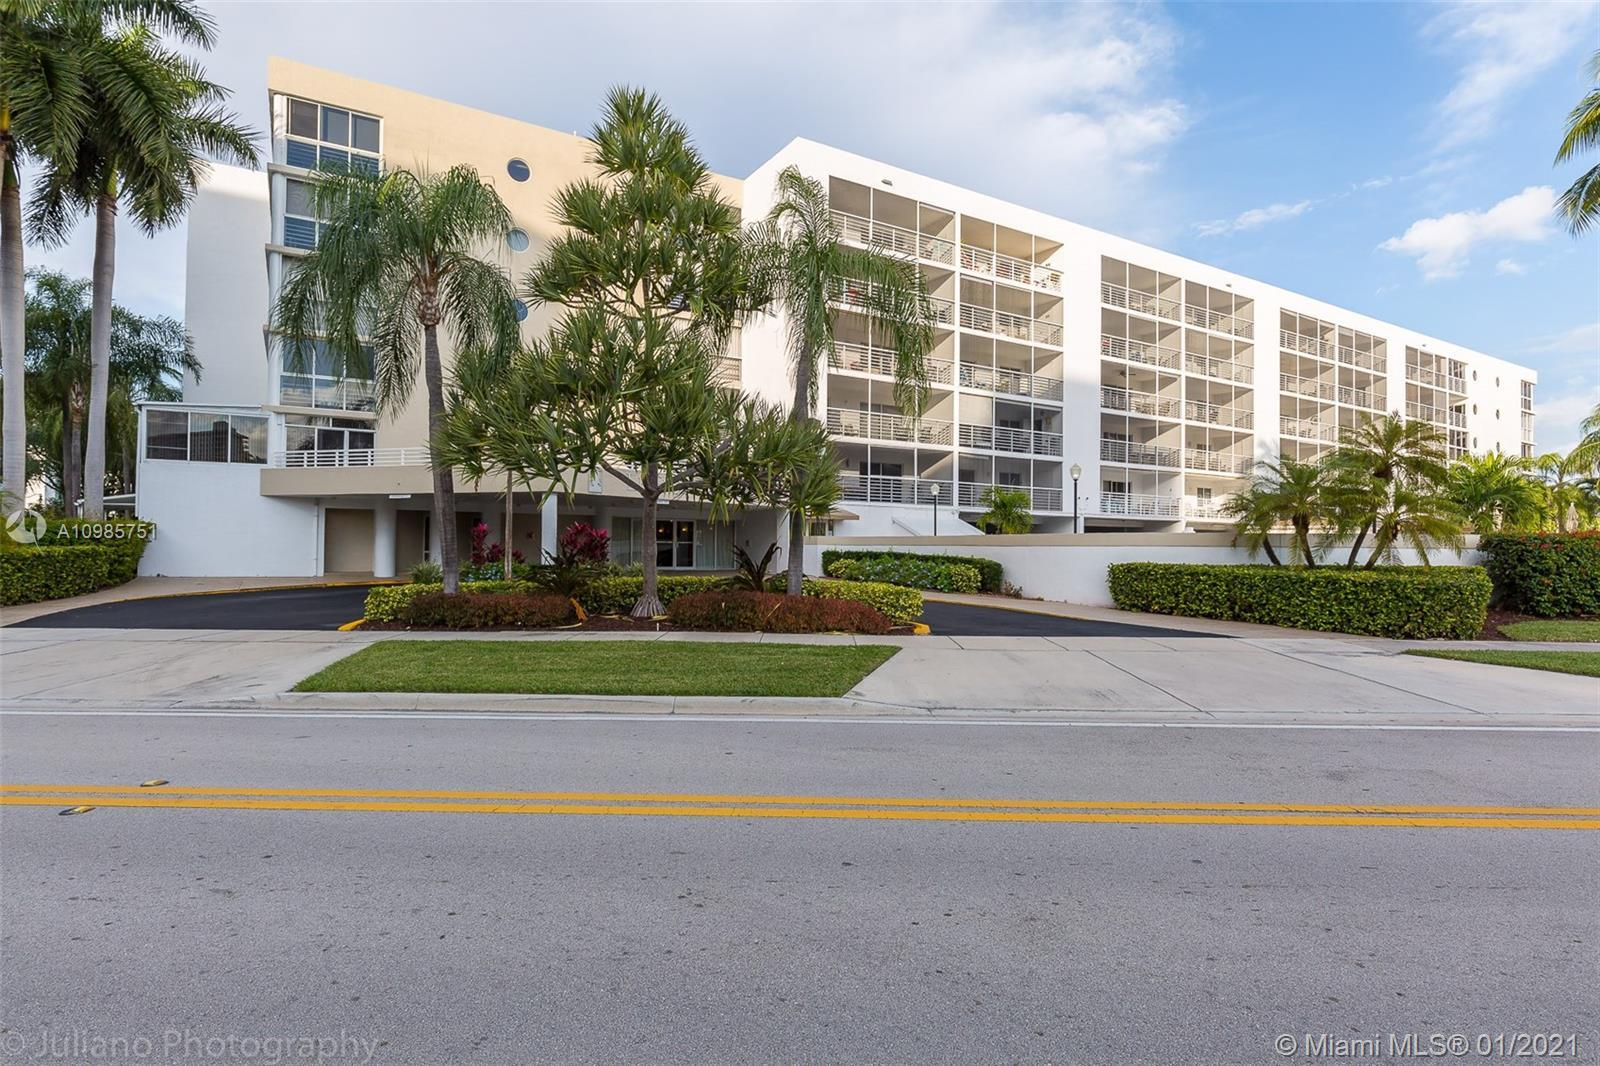 Back on market! Spacious unit in the heart of Sunny Isles Beach! Fully furnished, short-term rentals